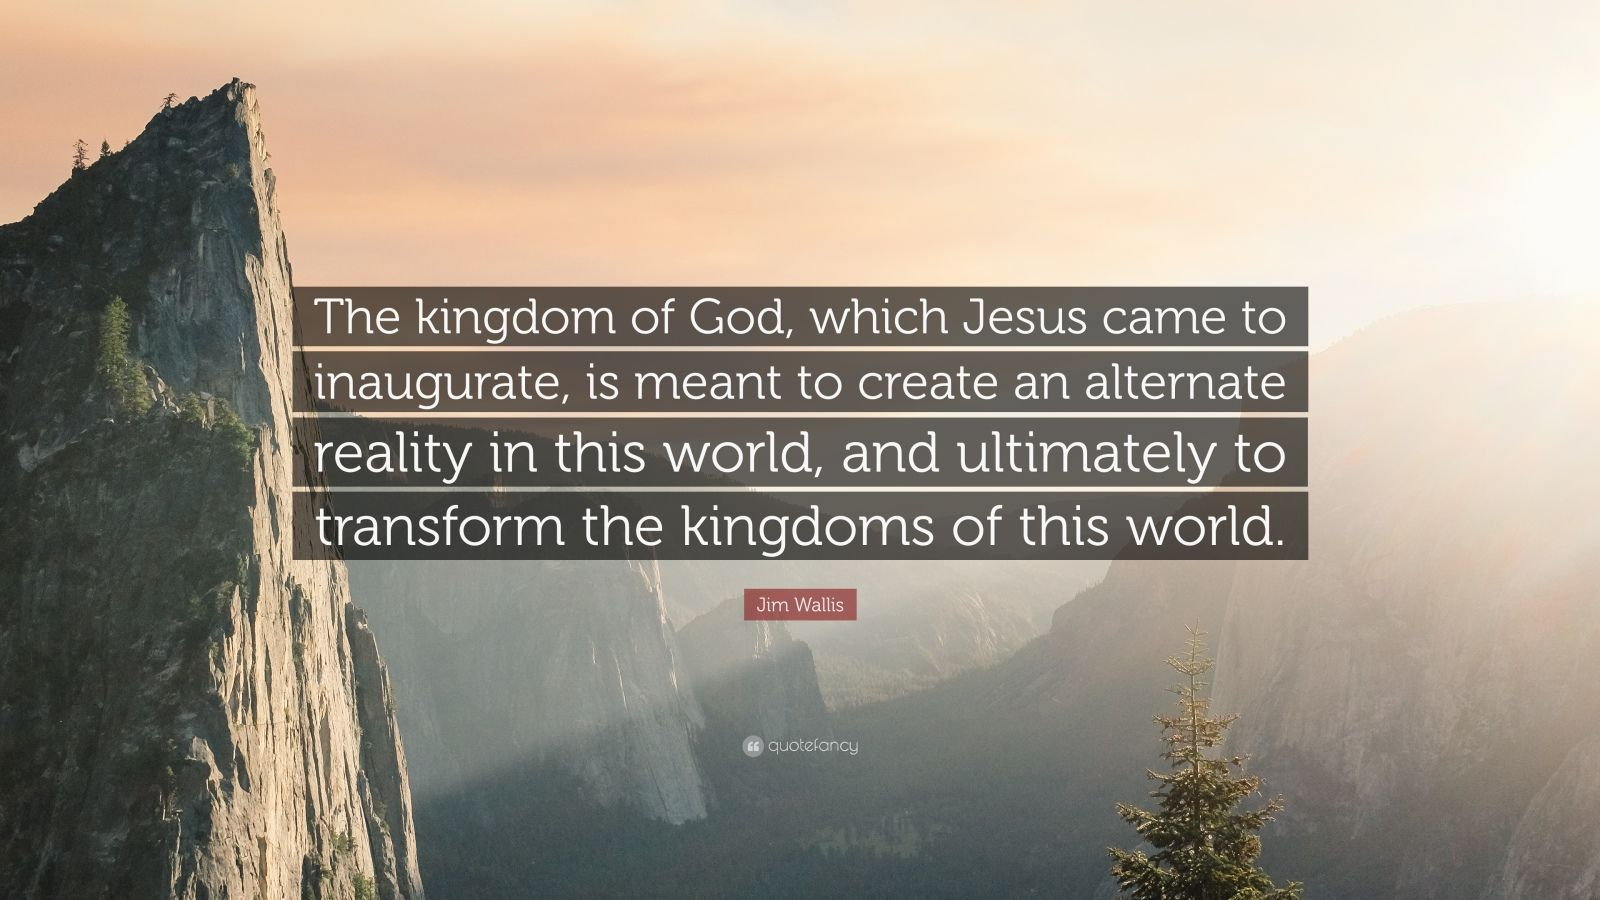 """Jim Wallis Quote: """"The kingdom of God, which Jesus came to inaugurate, is meant to create an alternate reality in this world, and ultimately to transform the kingdoms of this world."""""""